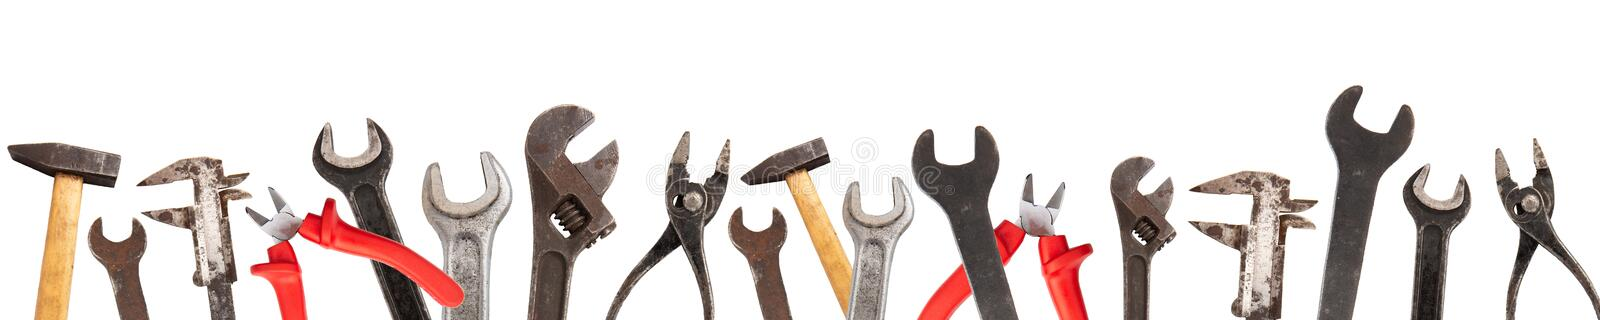 Wide collage of old craftsman tools isolated on white background stock illustration